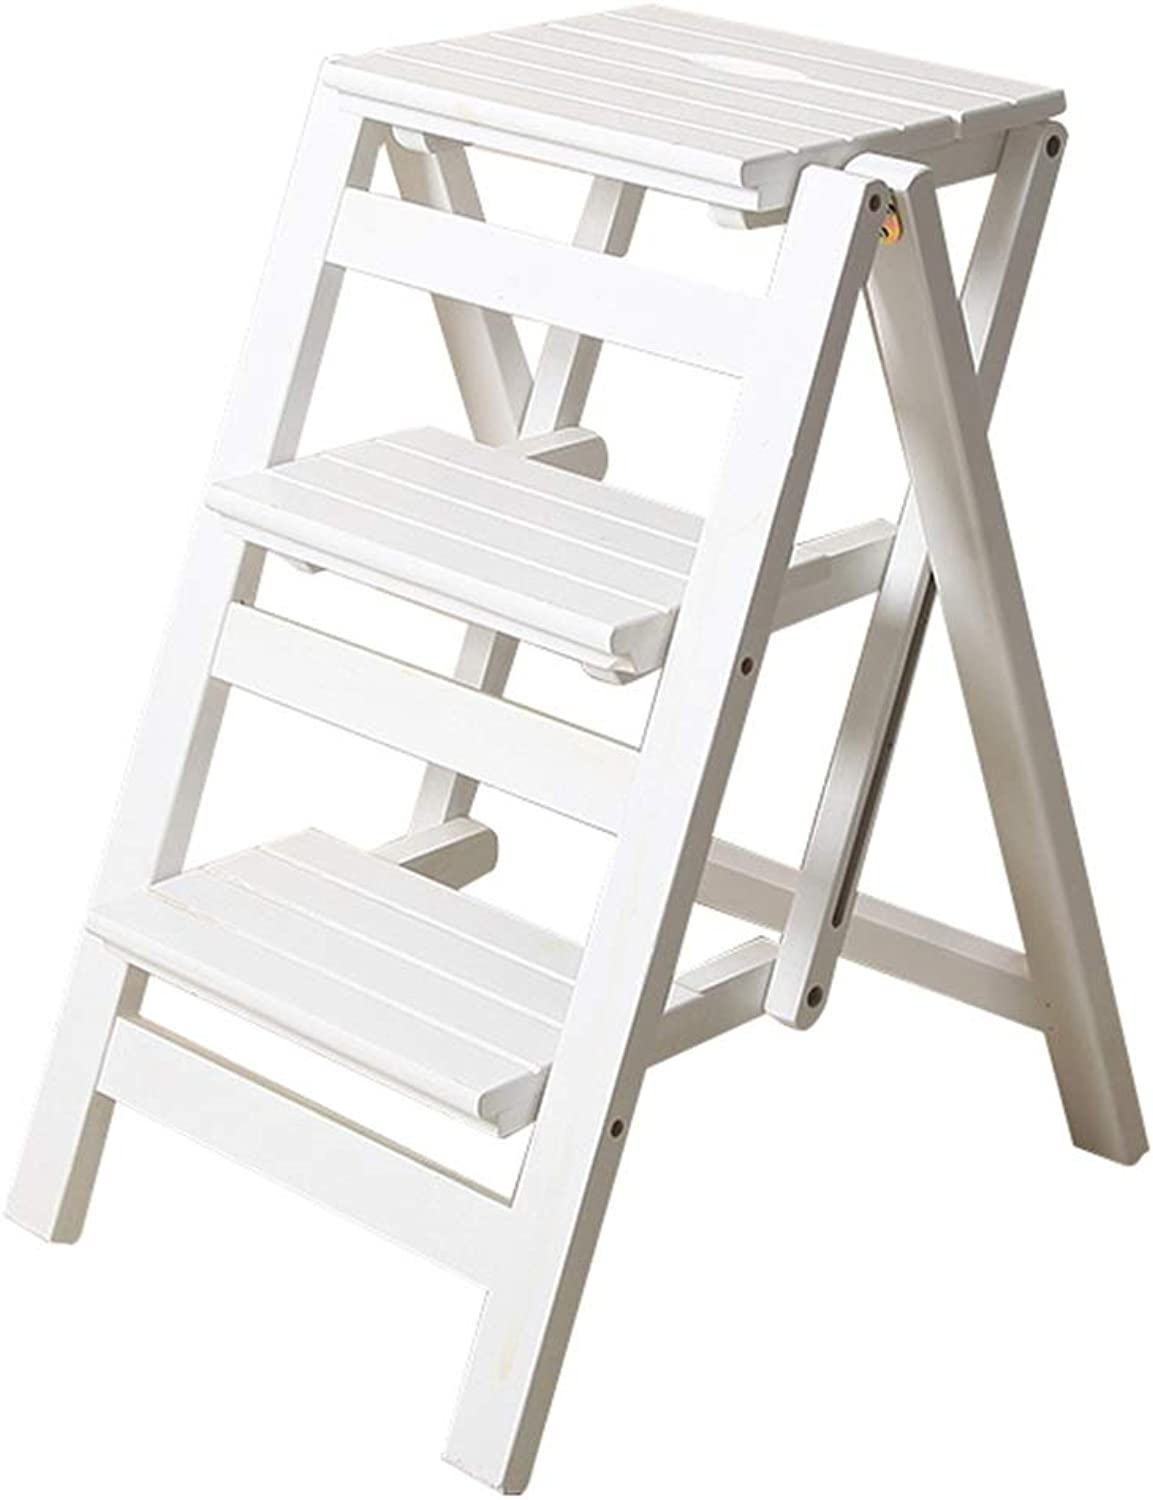 DQMSB Folding Solid Wood Ladder Stool Chair Multi-Function Ladder Pedal Stair Stair Chair 300 Lb Capacity (White) (Size   3 Wide Steps)